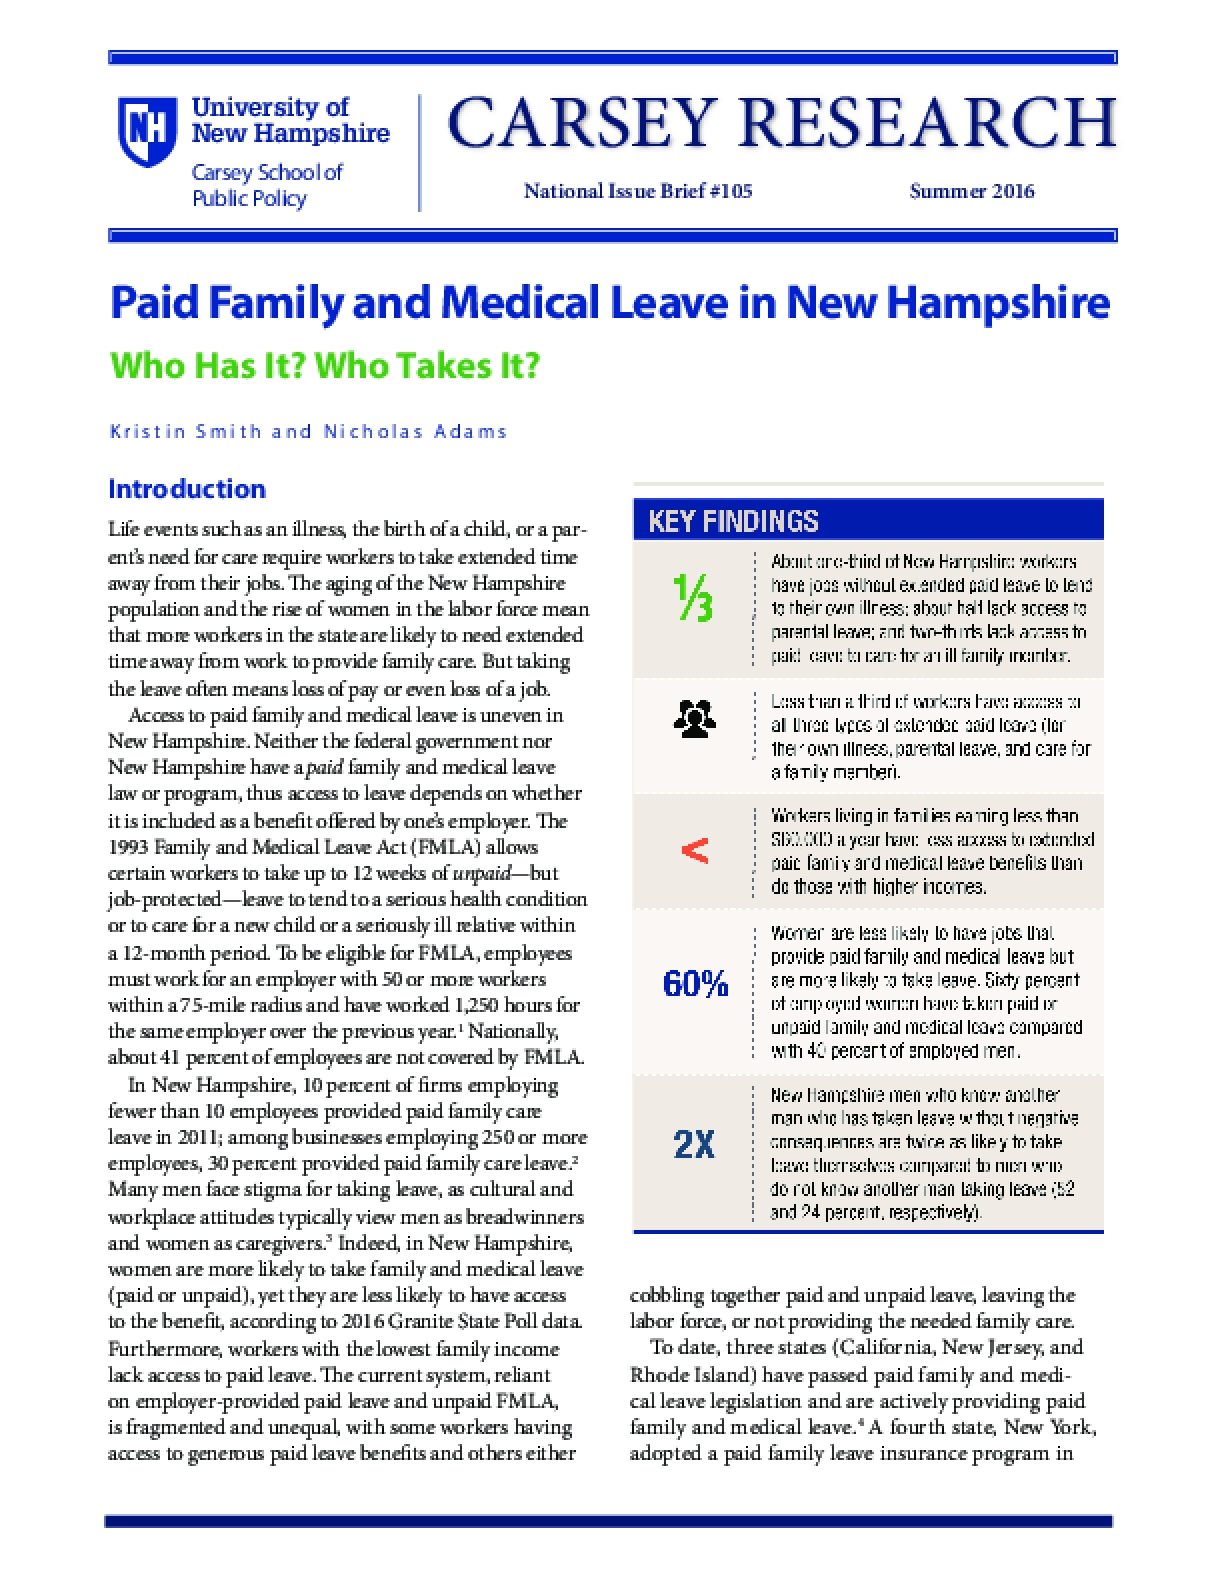 Paid Family and Medical Leave in New Hampshire